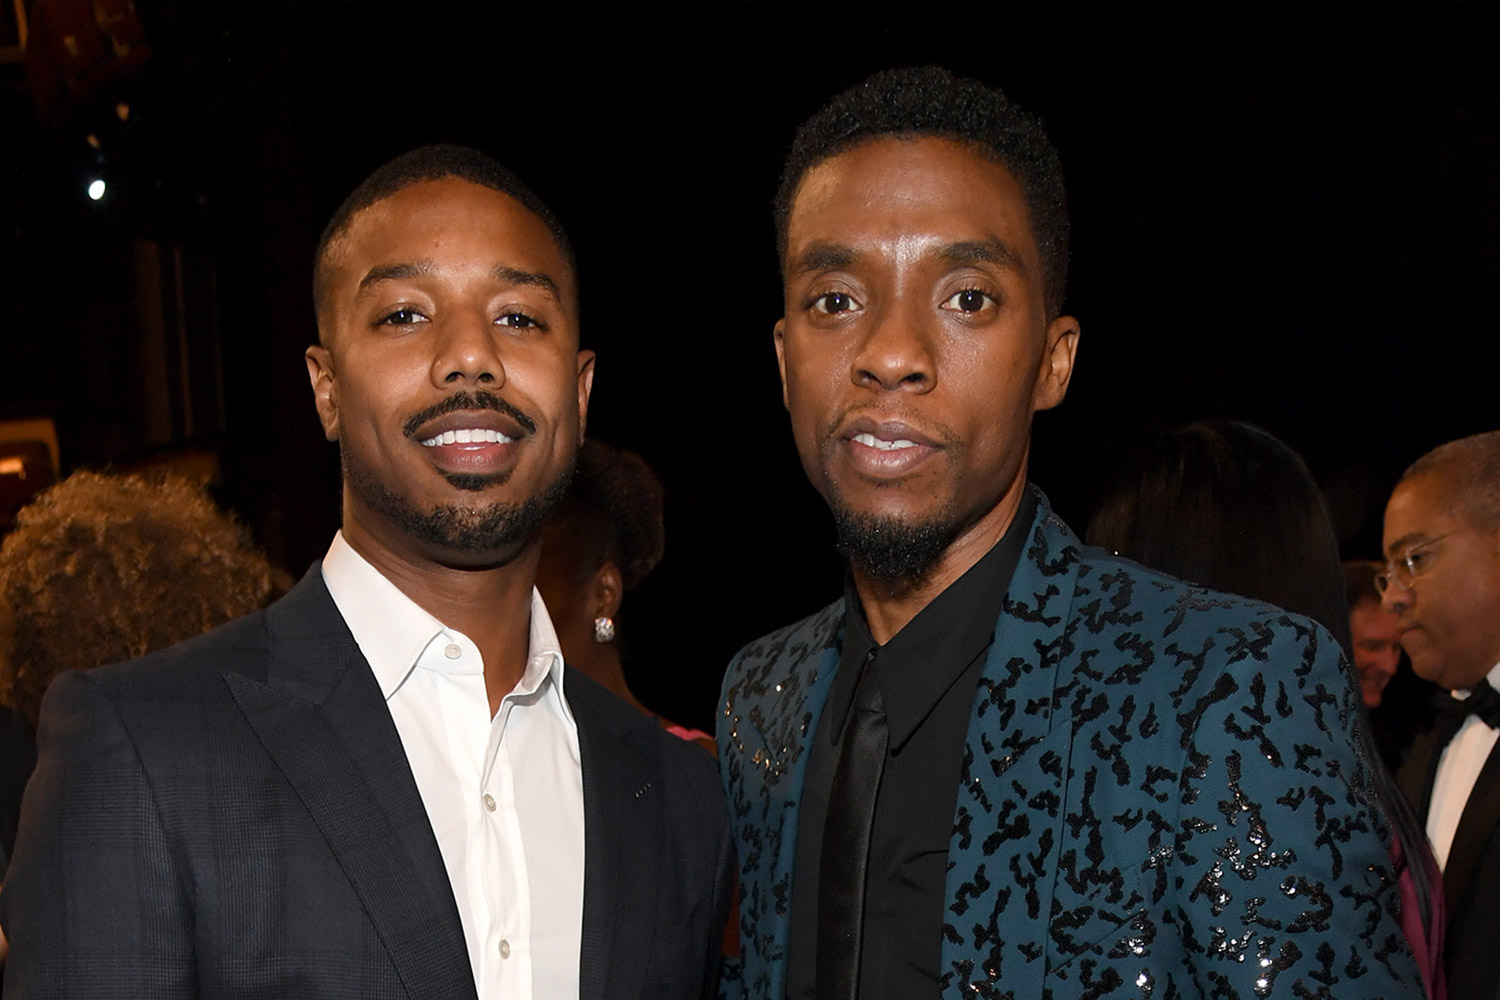 Michael B. Jordan and Chadwick Boseman